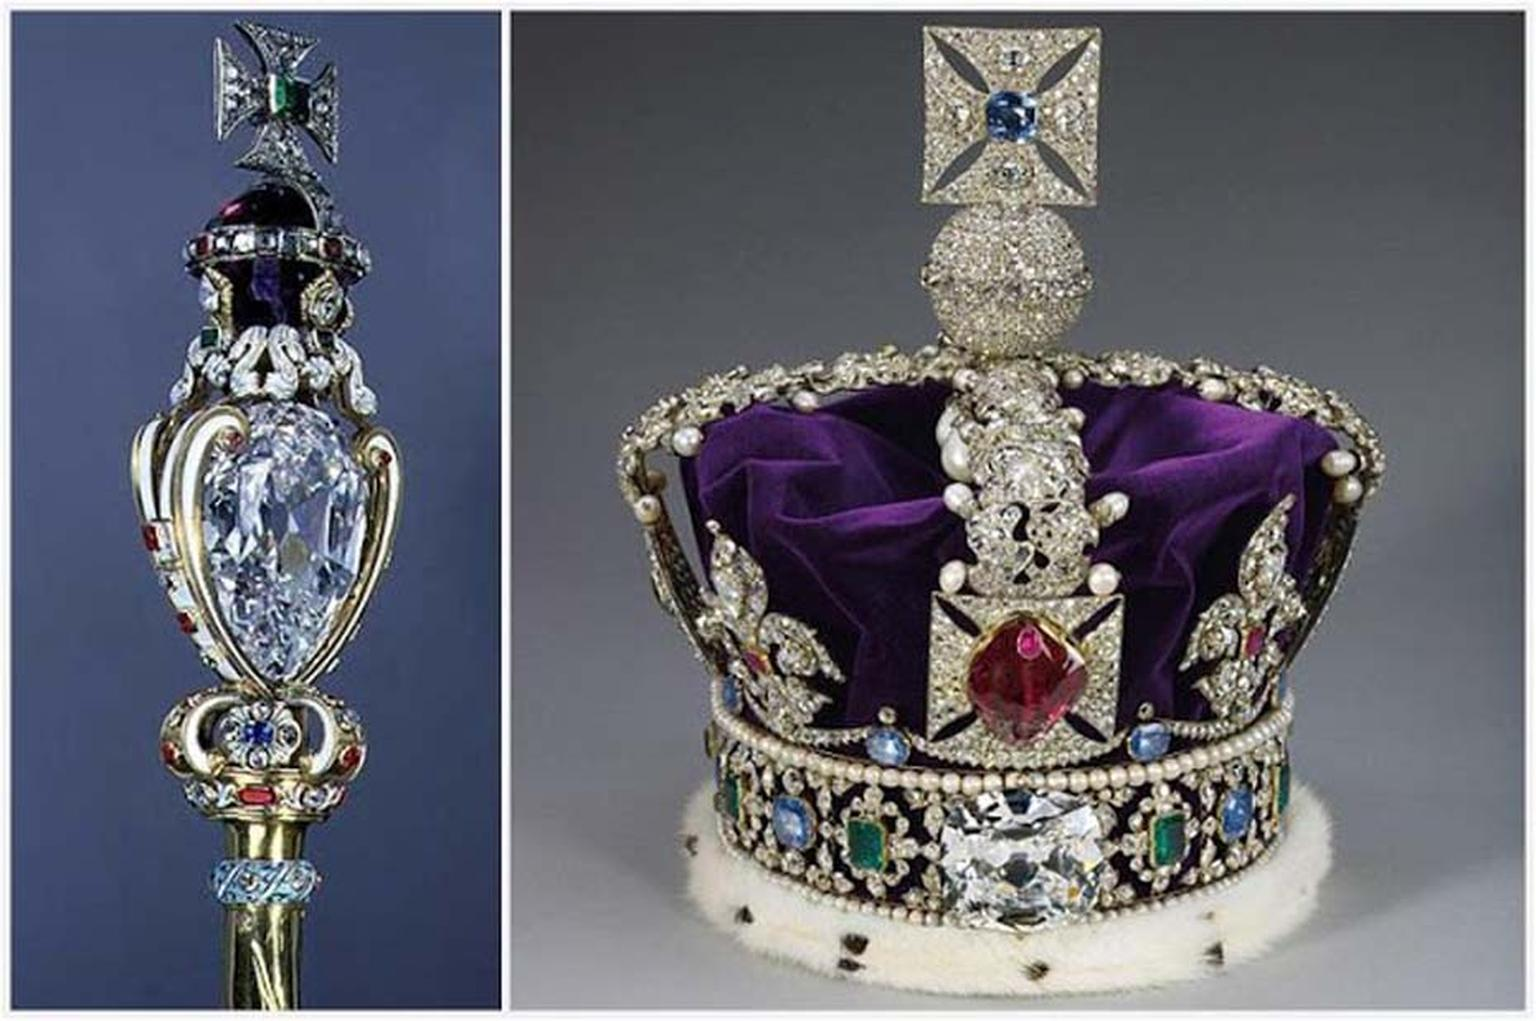 After Joseph Asscher cut the enormous 3,106ct Cullinan diamond in 1902, the two biggest diamonds, Cullinan I and Cullinan II, were set into the Sovereign's Sceptre and the Imperial State Crown, both of which are part of the British Crown Jewels.